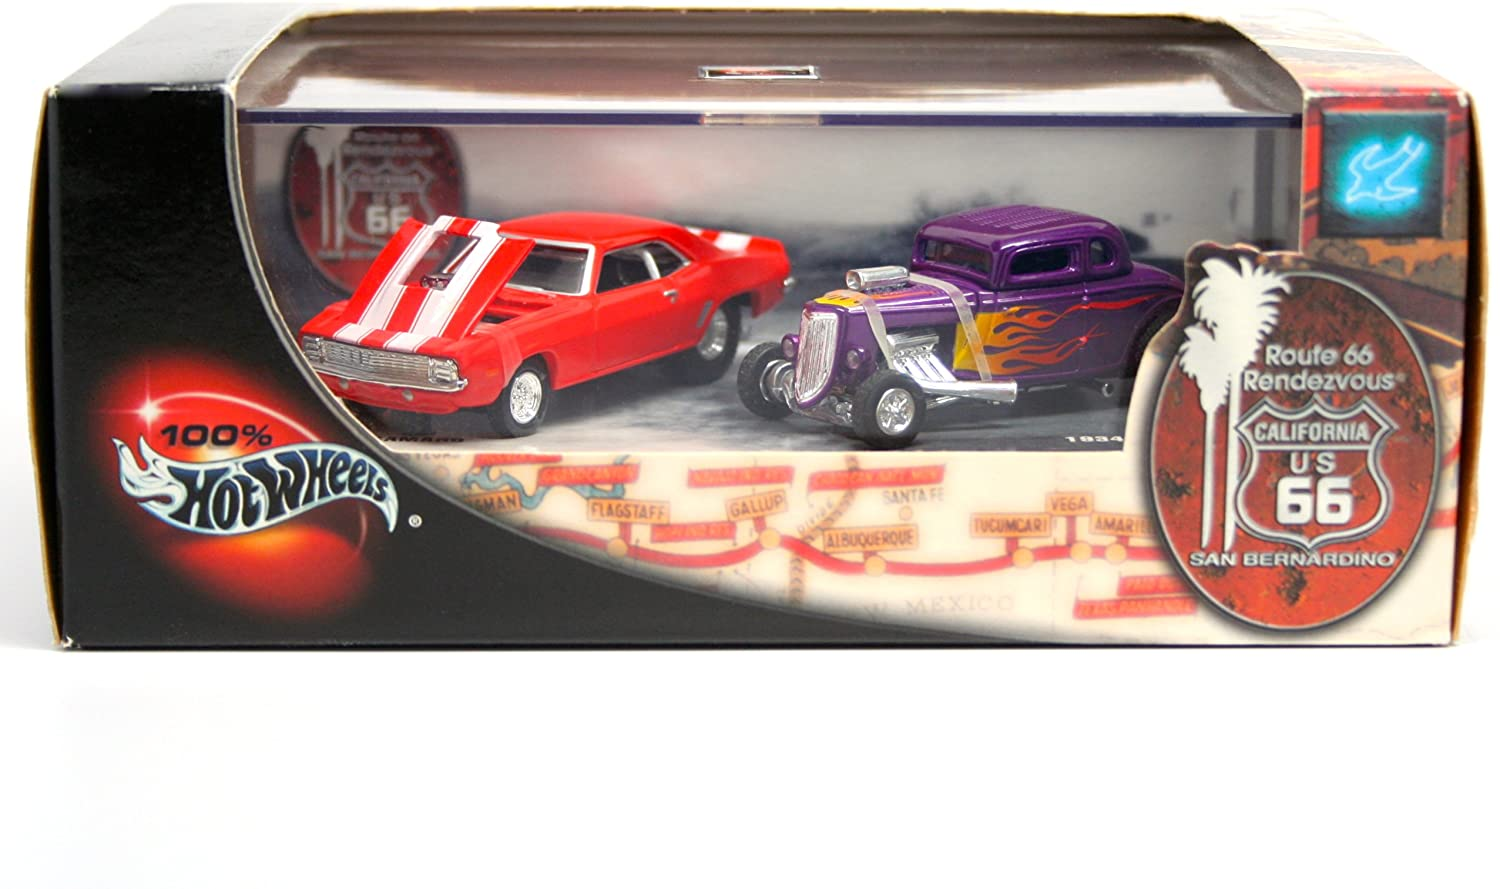 1969 CAMARO & 1934 FORD * Limited Edition * Hot Wheels 2001 ROUTE 66 RENDEZVOUS 1:64 Scale 2-Car Custom Vehicle Box Set